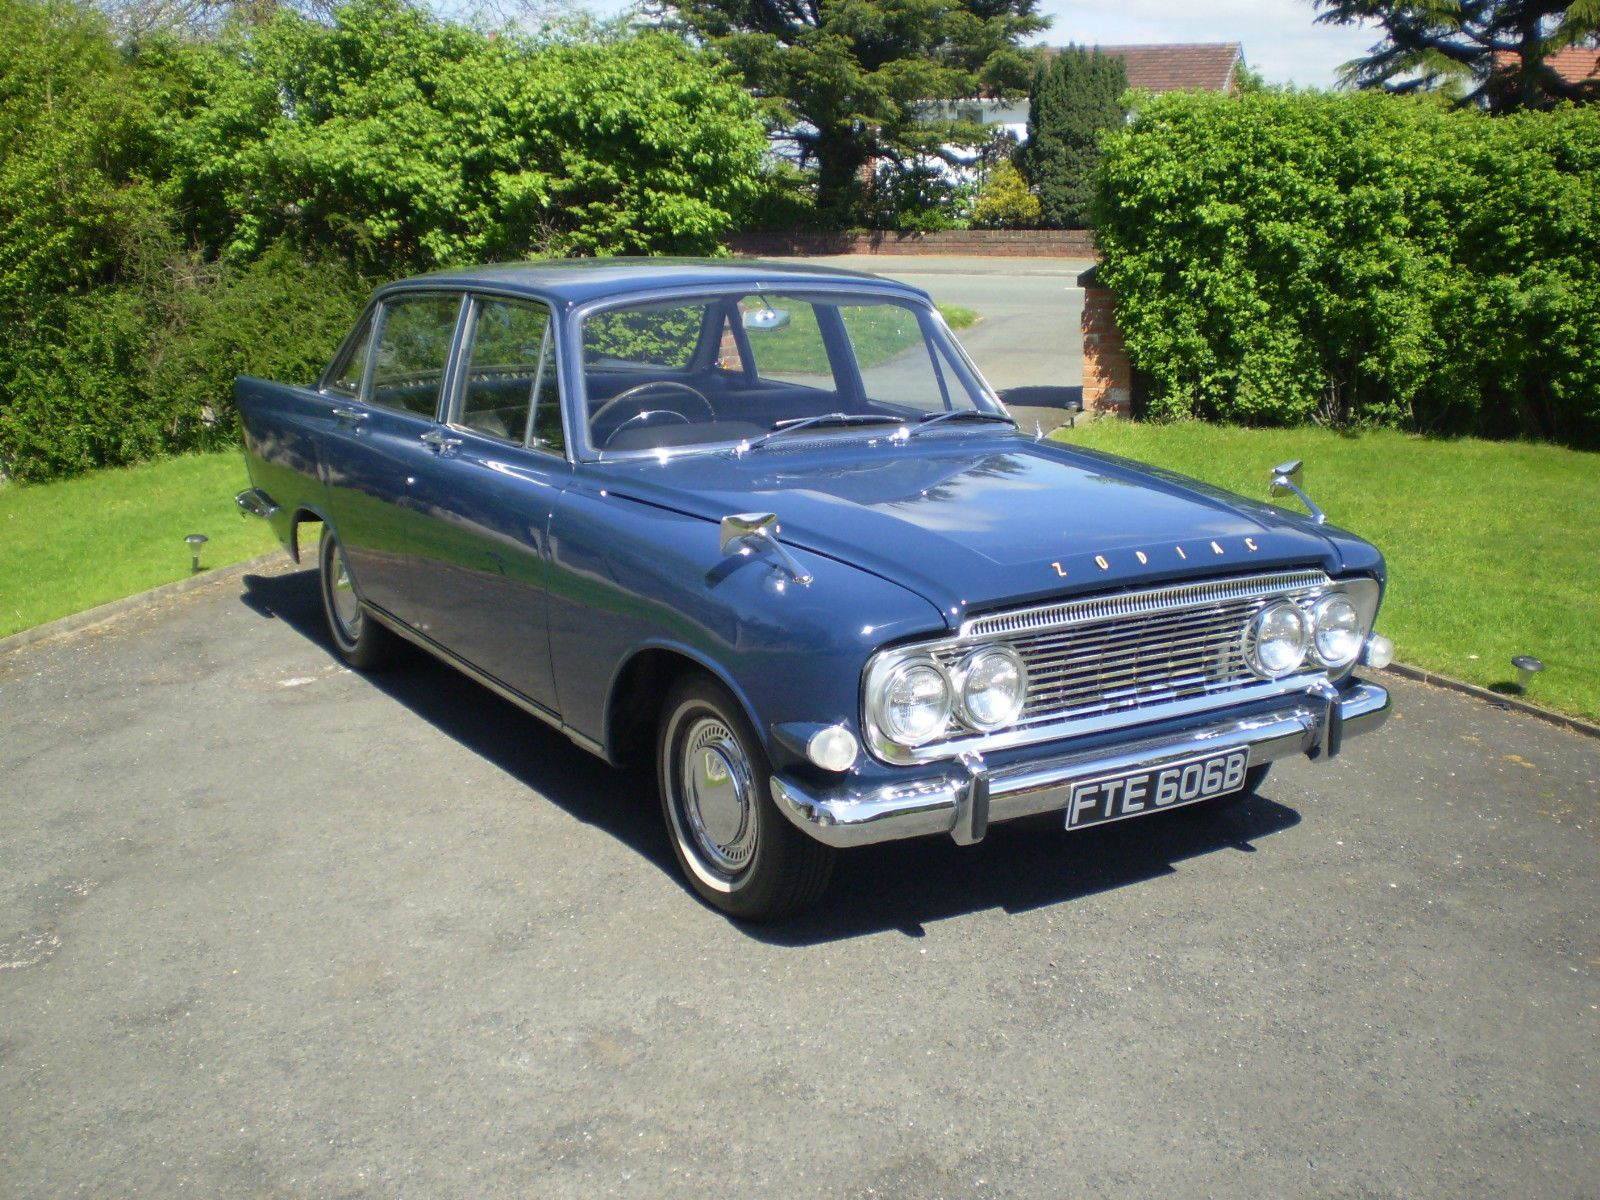 1964 ford zodiac mk3 automatic | Zodiac, Ford and Automatic cars